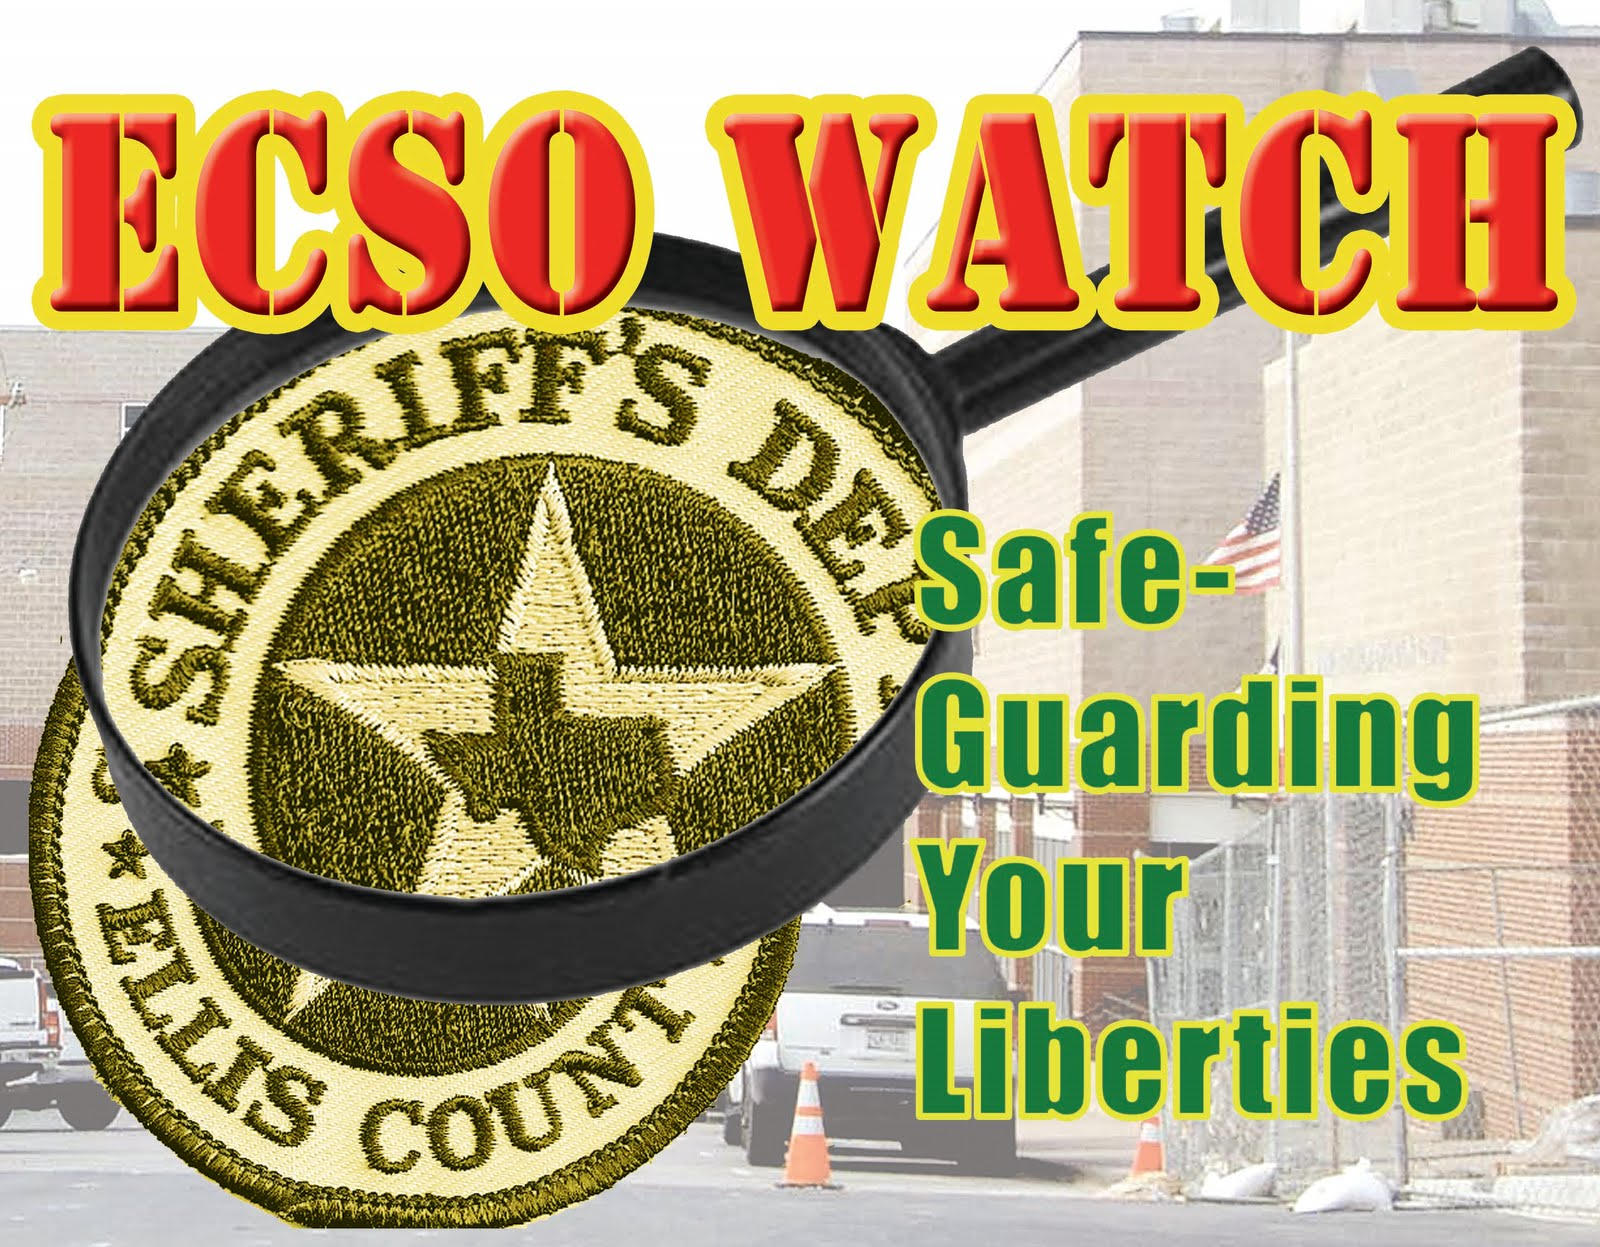 ECSO Watch | ECSOWatch.com